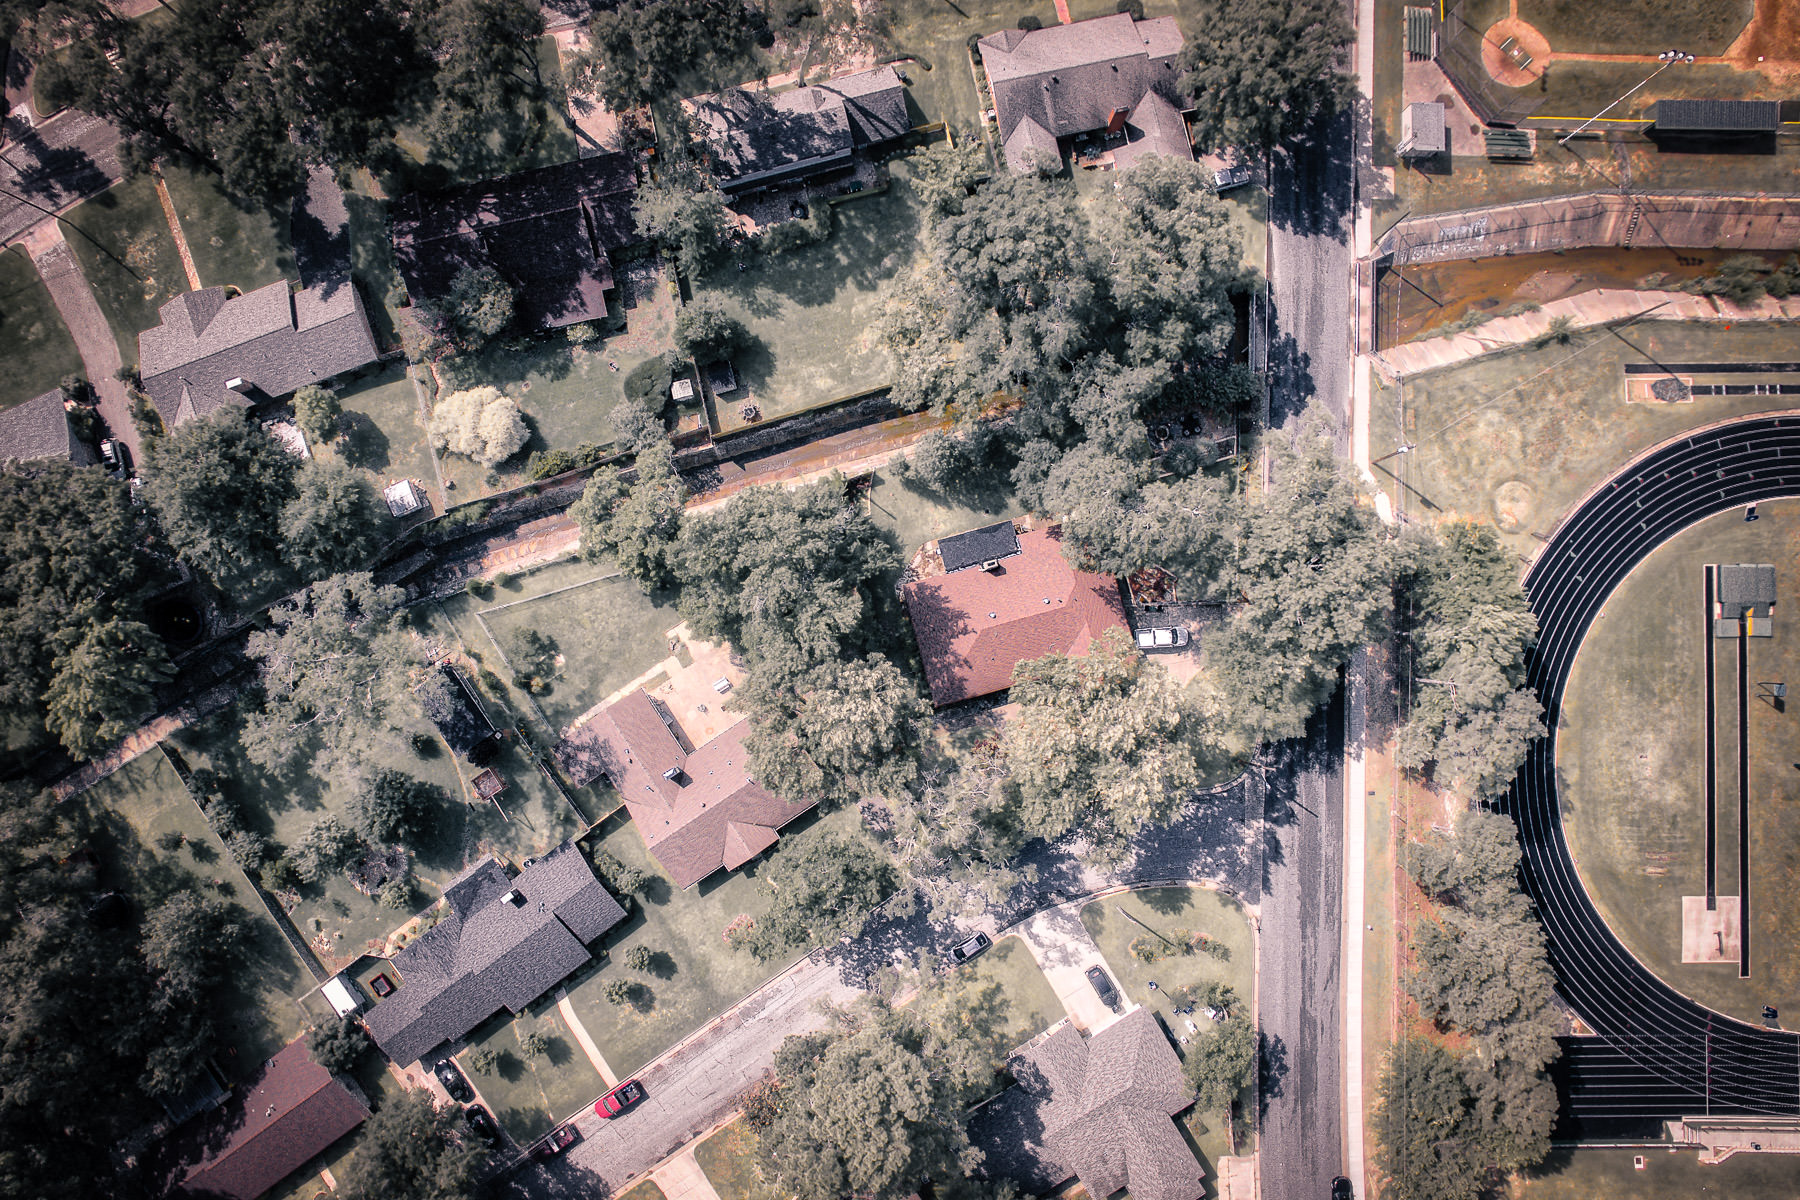 An aerial view of a neighborhood in Tyler, Texas.